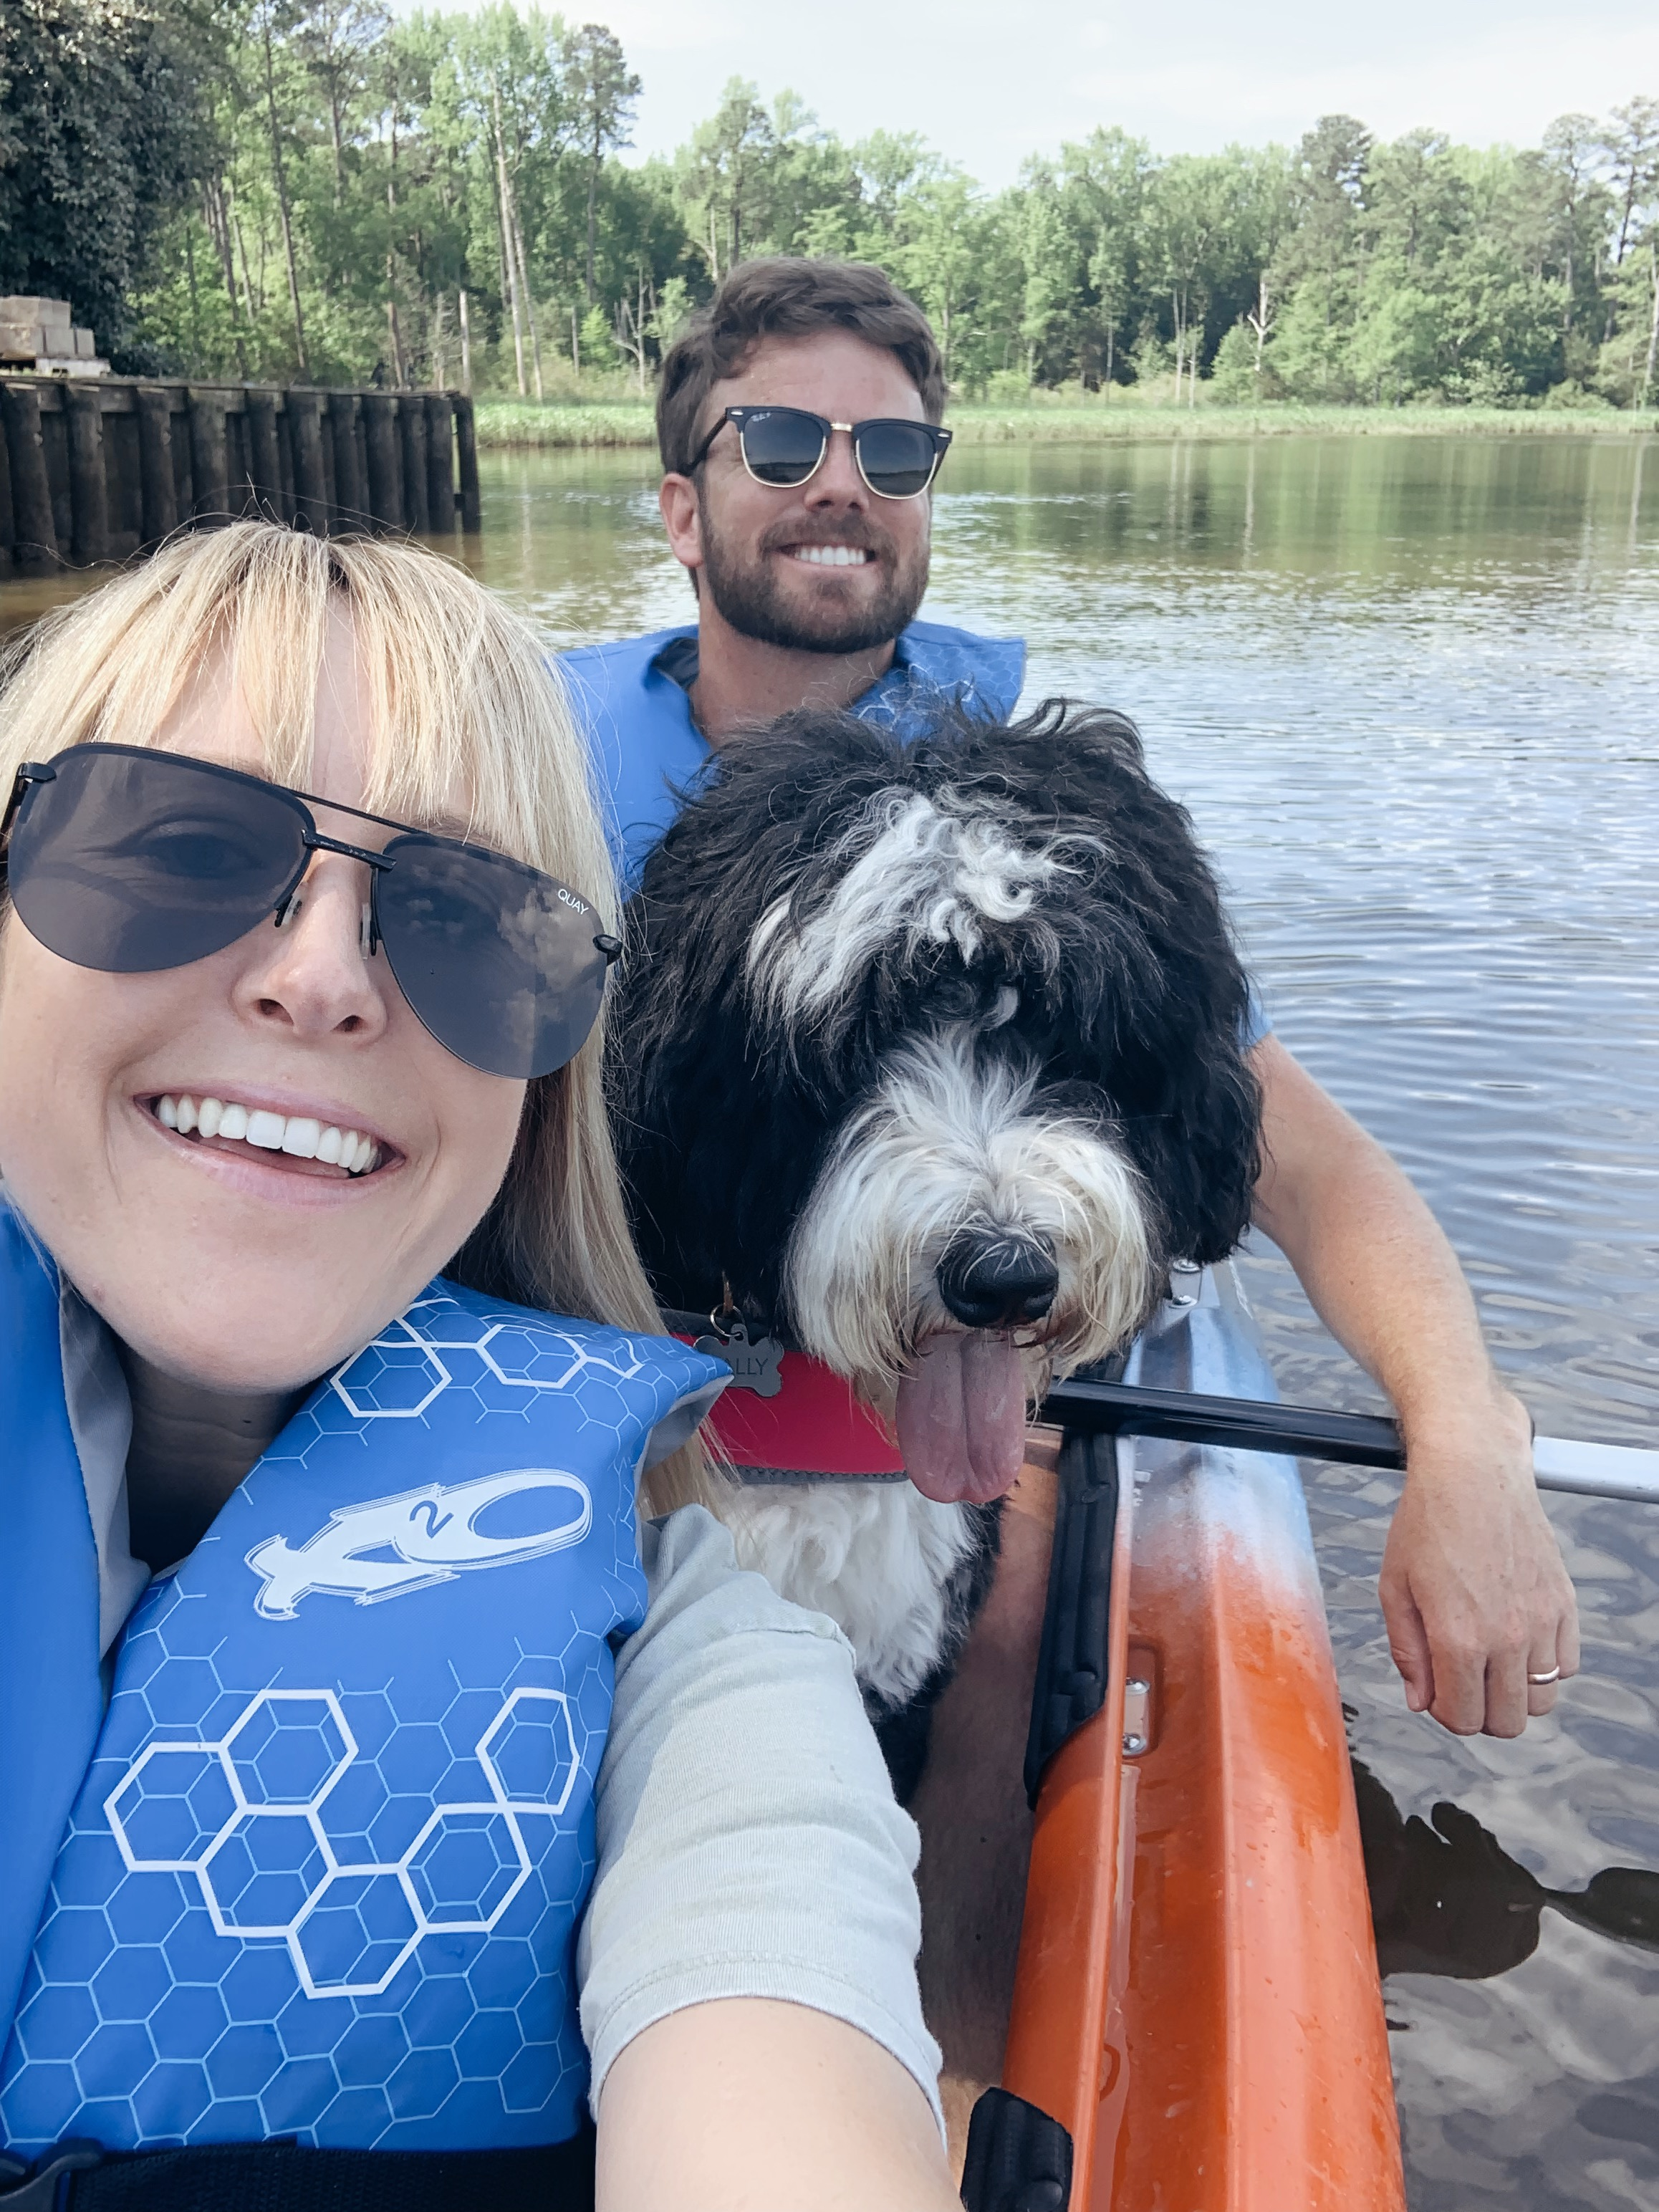 Kayaking with your pup is quite the experience! Ha!